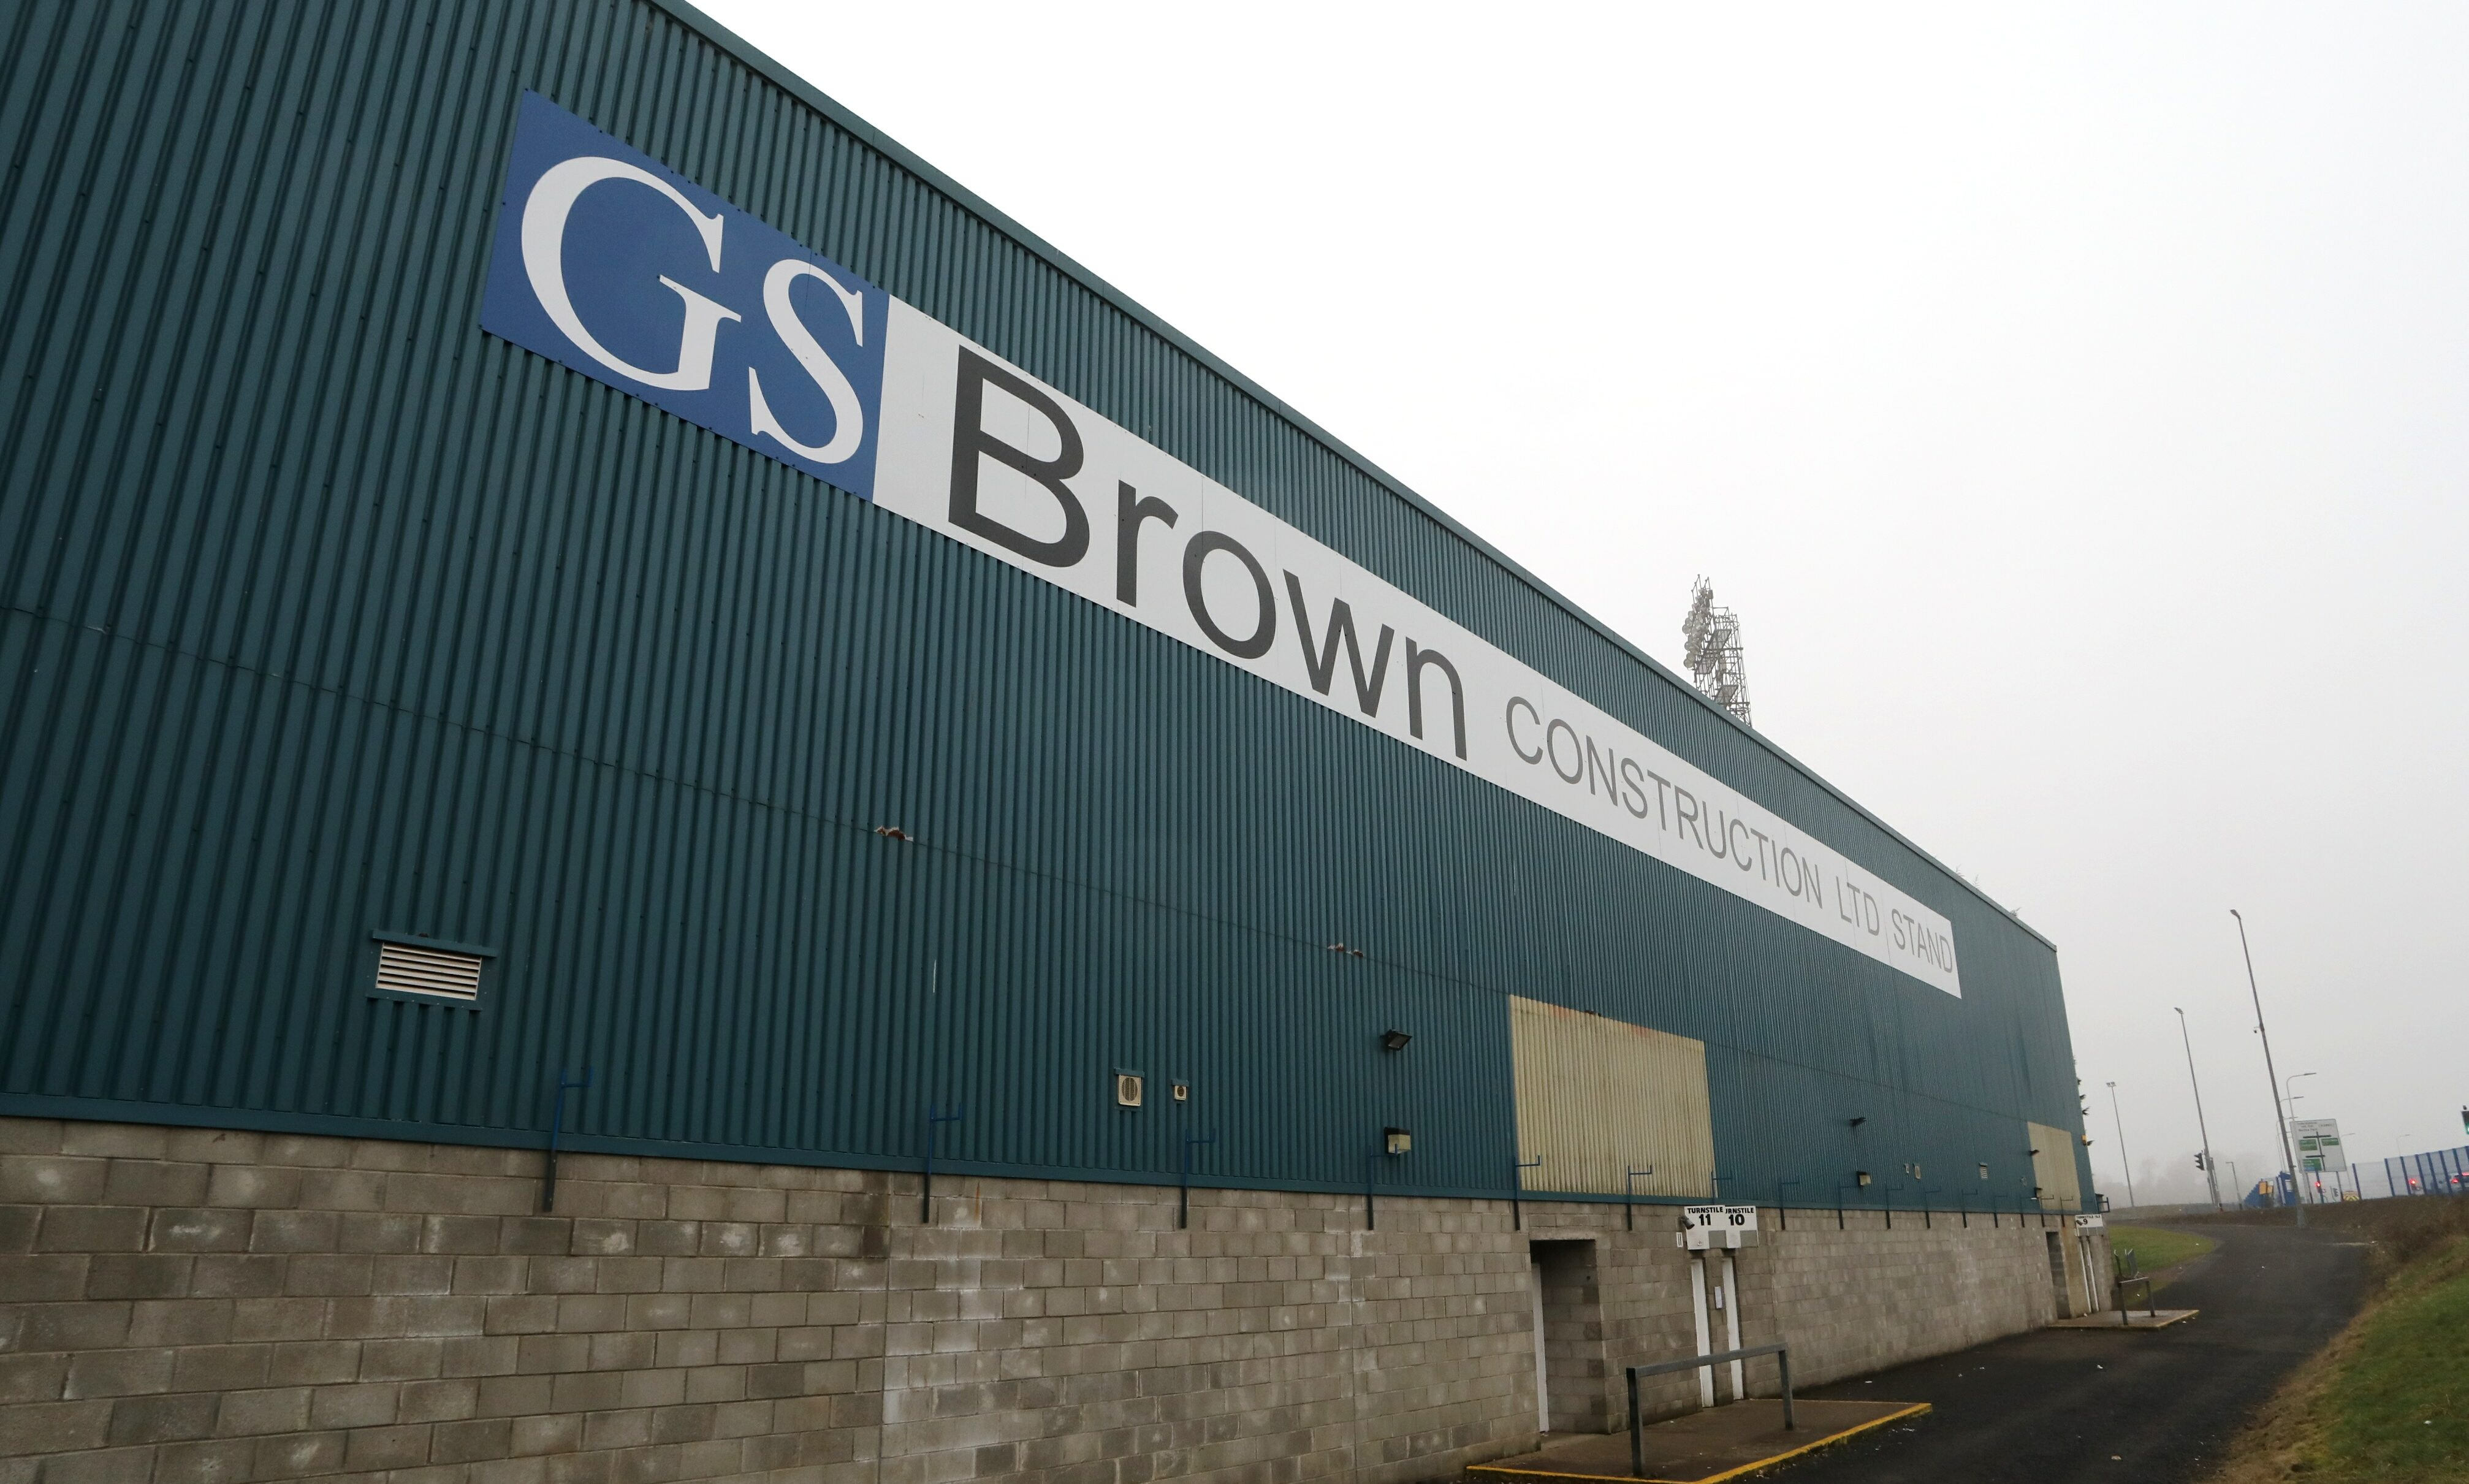 The offending sign at McDiarmid Stadium